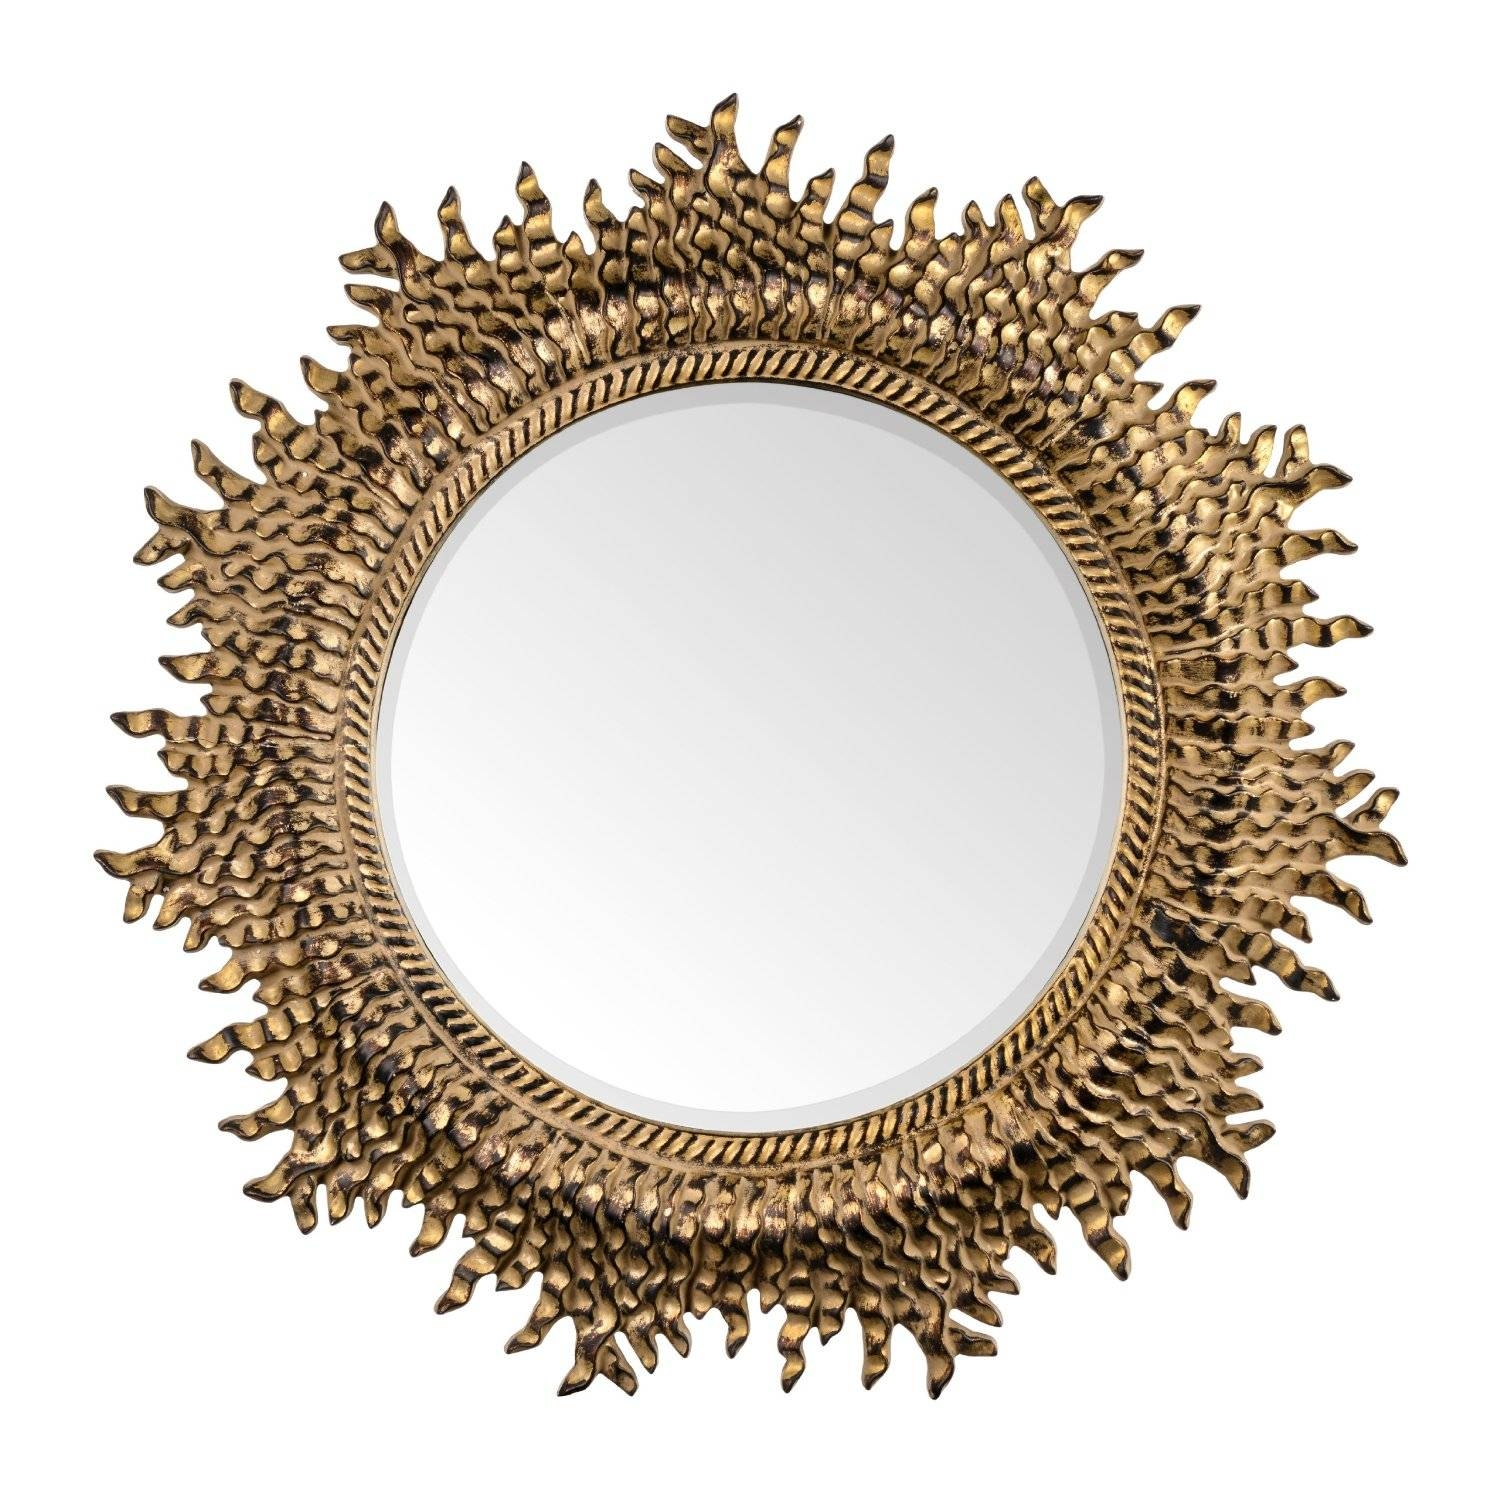 16 Ornate Mirrors For Your Home | Qosy intended for Gold Ornate Mirrors (Image 1 of 25)